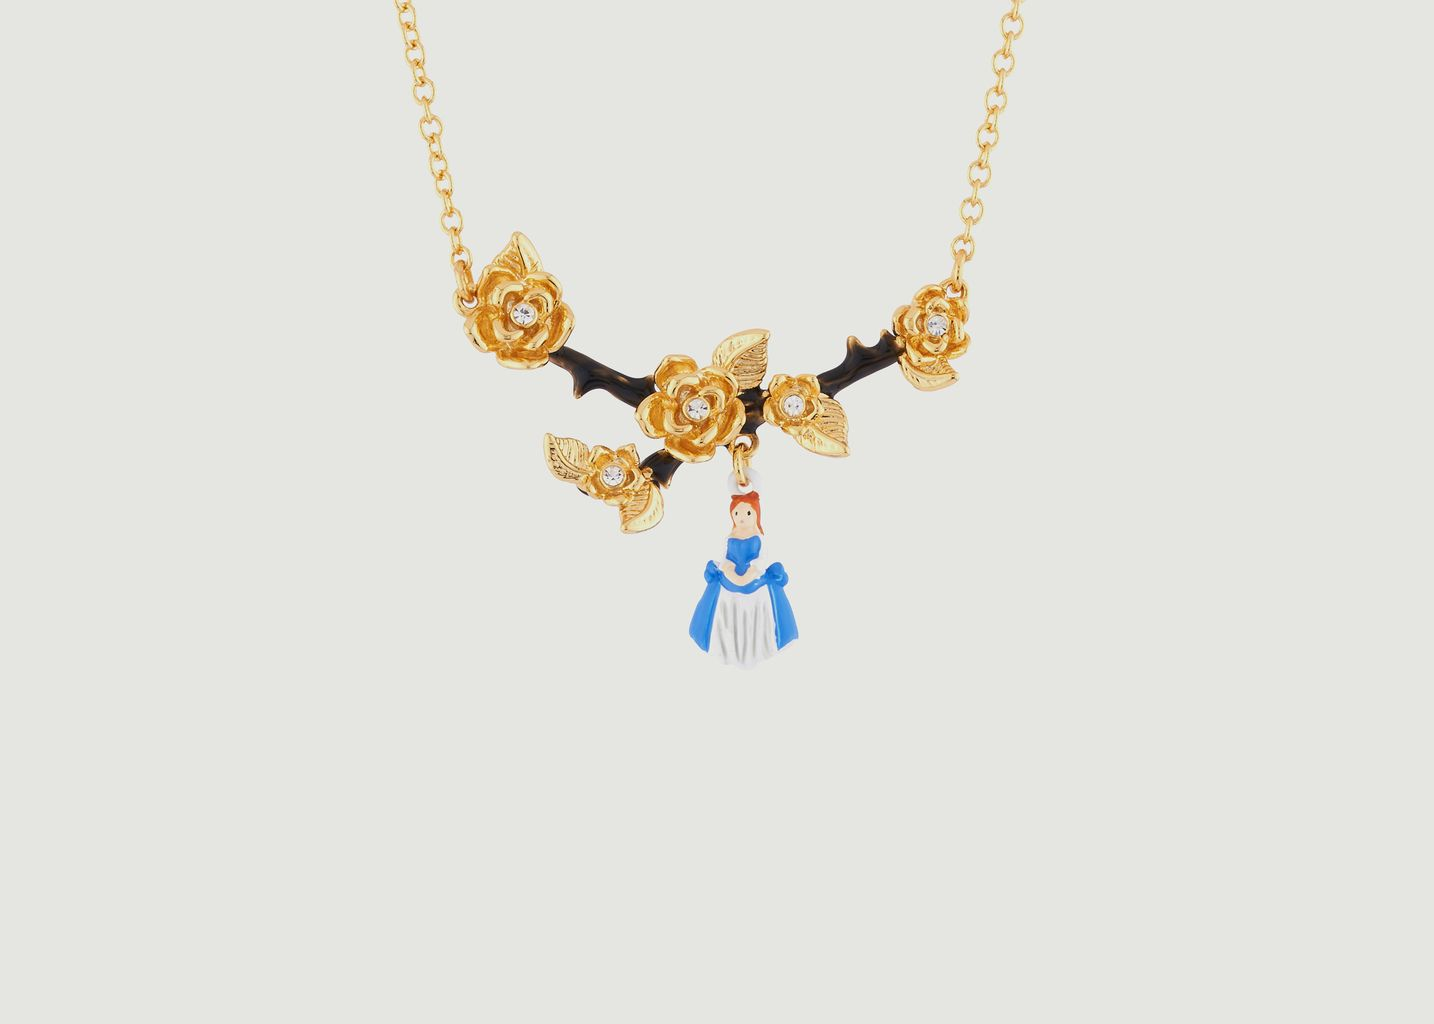 Belle Necklace - N2